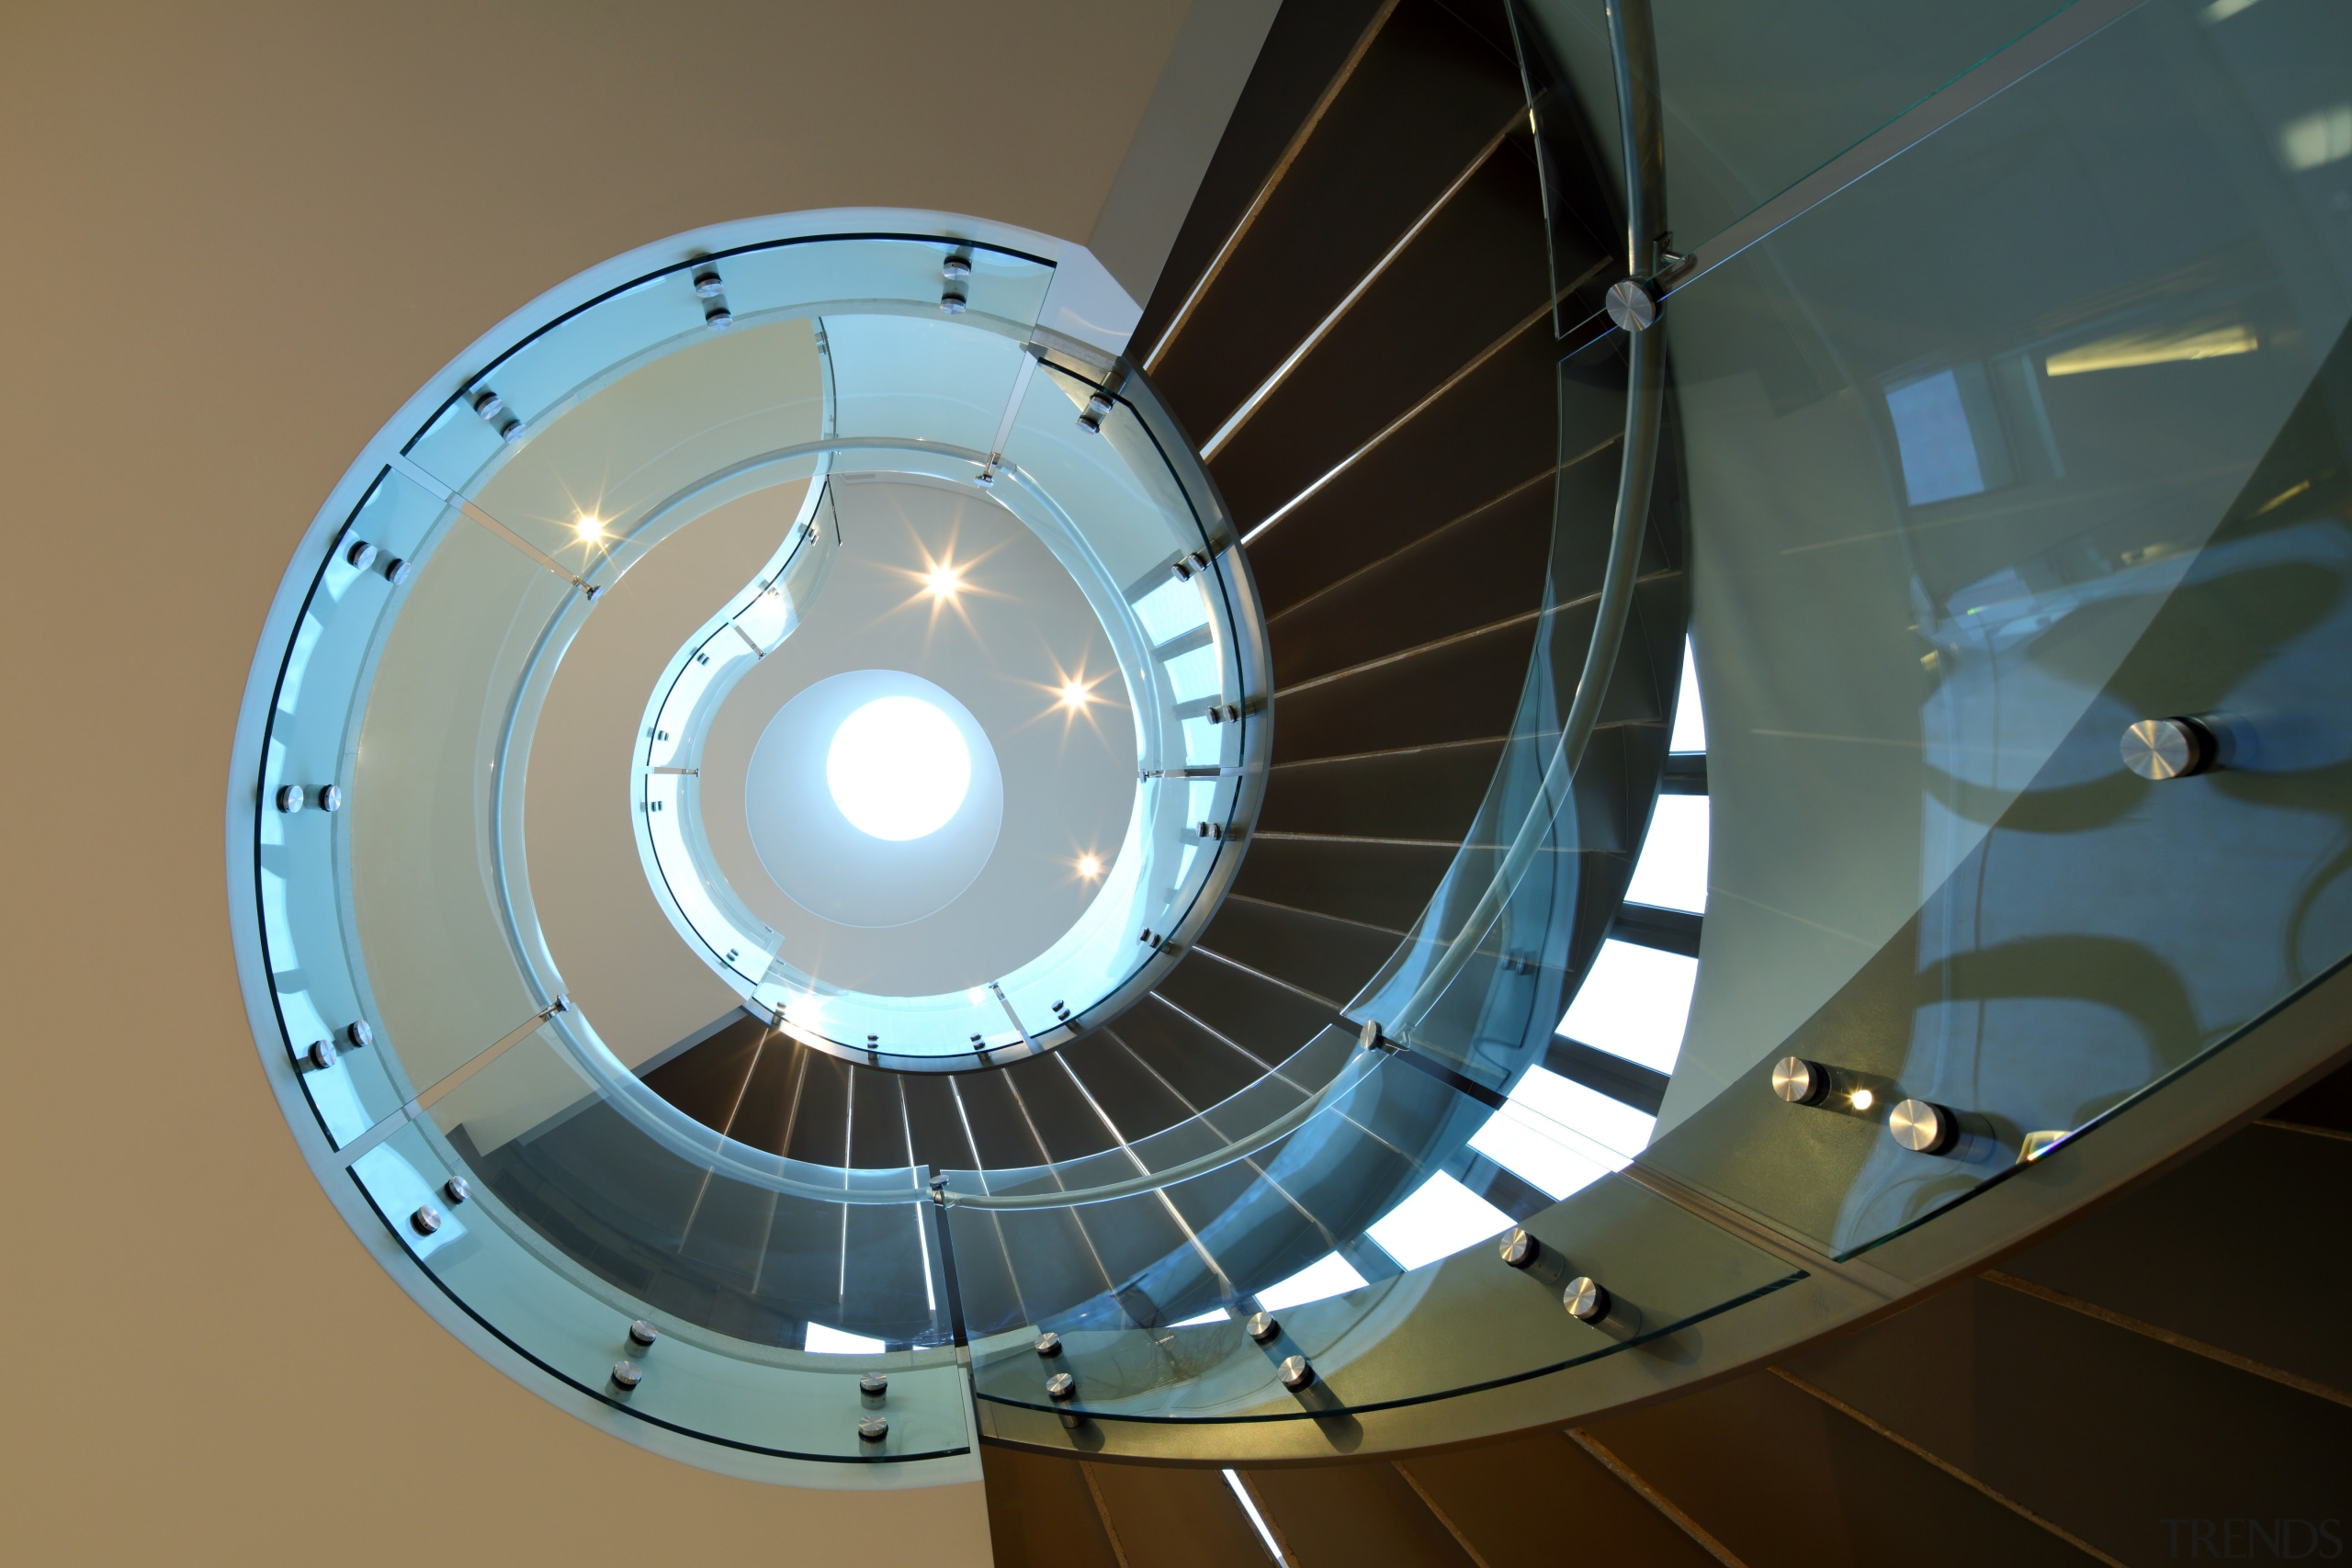 This circulation stair connects all three levels of architecture, ceiling, circle, daylighting, light, lighting, product design, spiral, black, brown